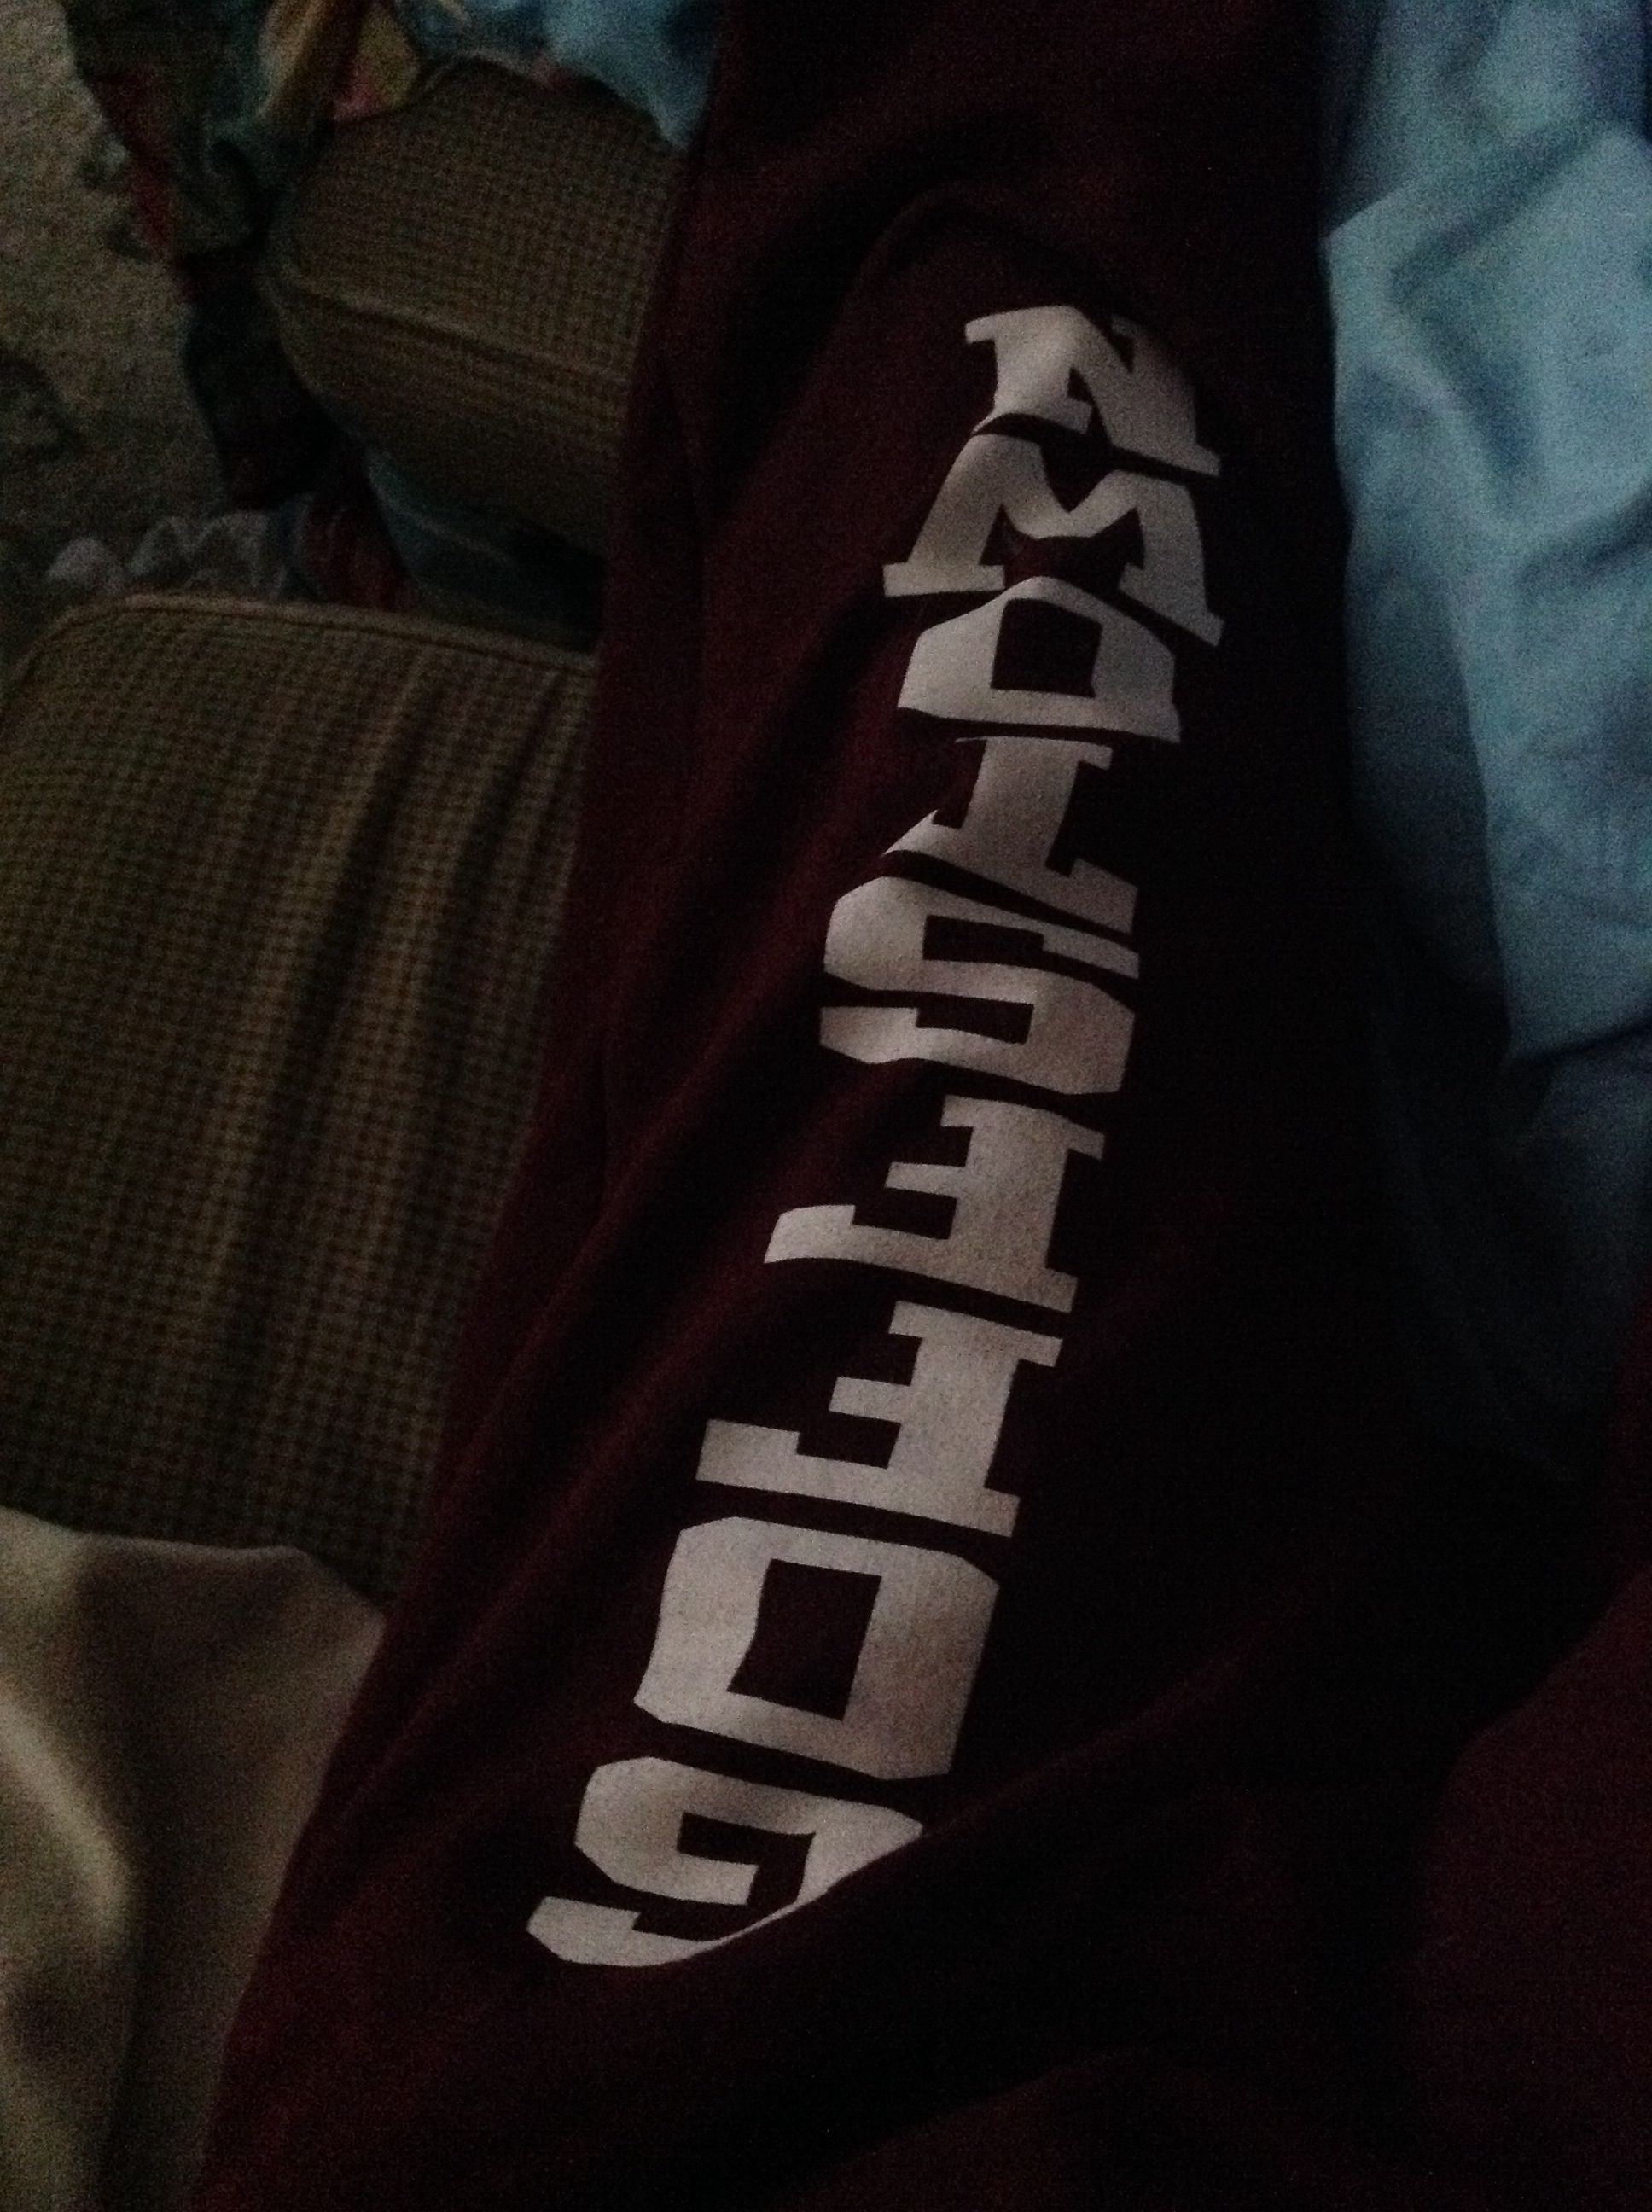 I bought them at my school it says Goffstown